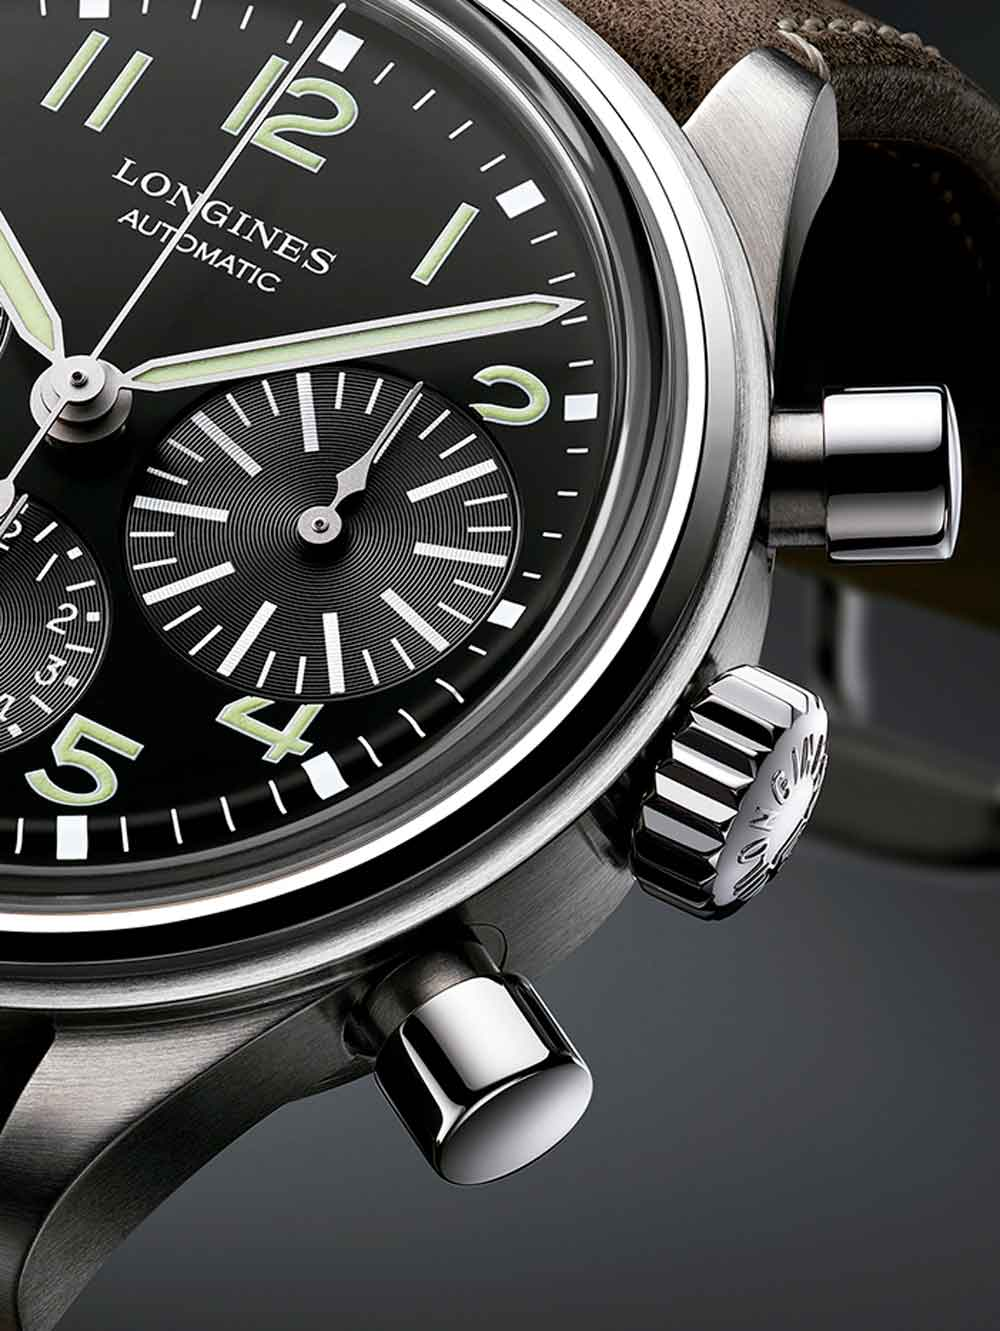 crónografo The Longines Avigation BigEye